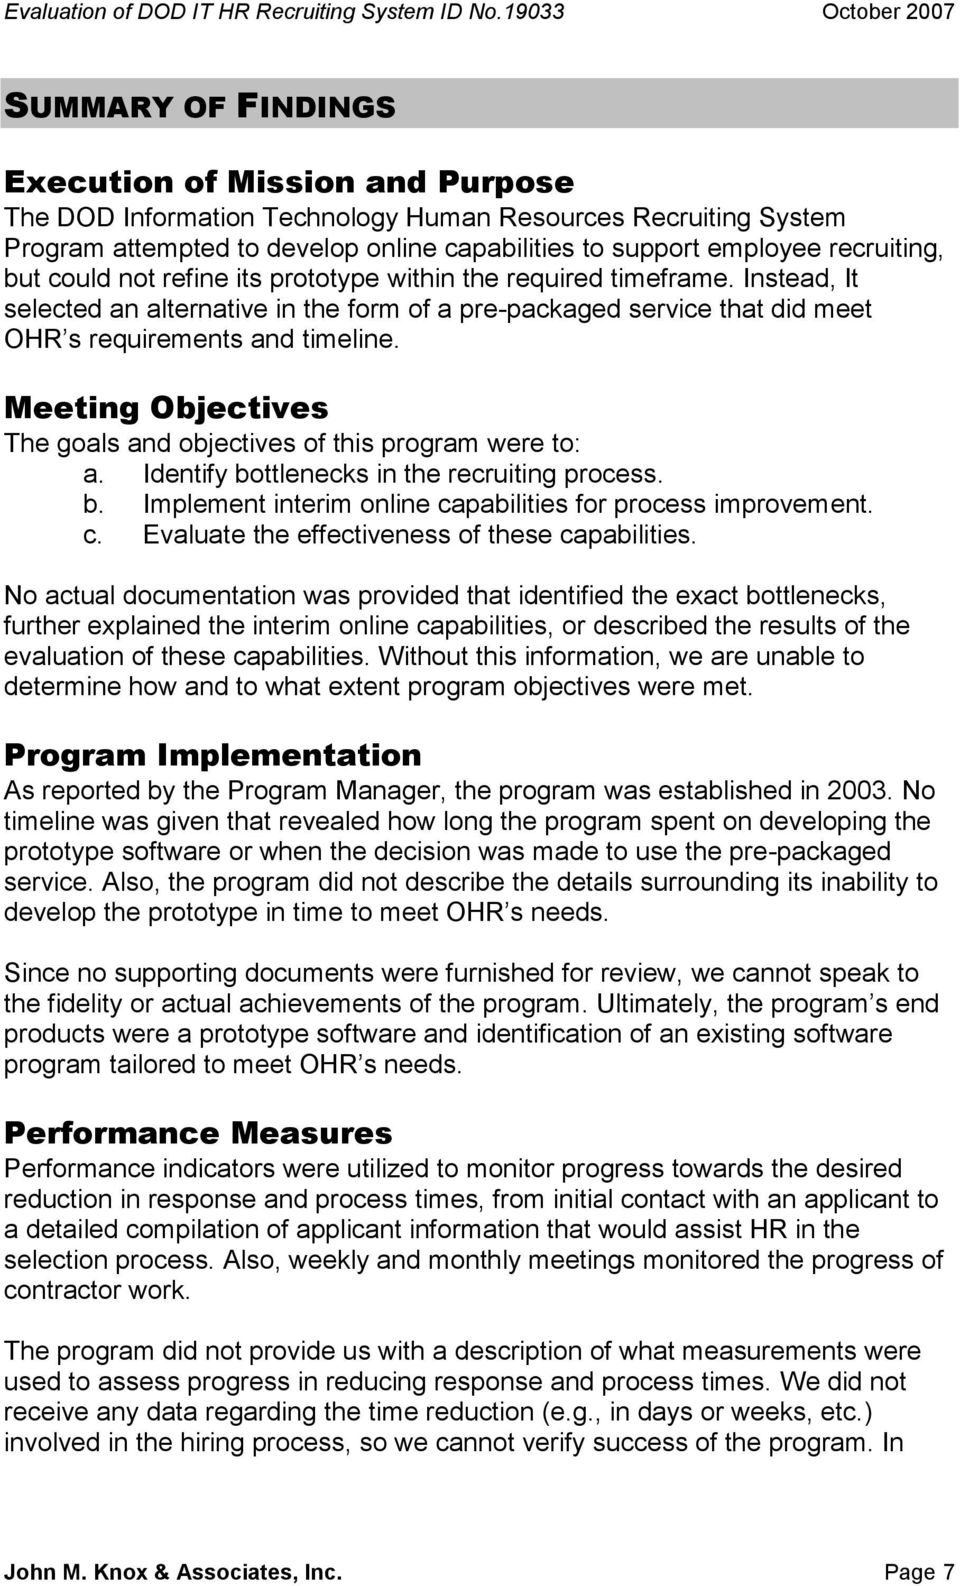 Meeting Objectives The goals and objectives of this program were to: a. Identify bottlenecks in the recruiting process. b. Implement interim online capabilities for process improvement. c. Evaluate the effectiveness of these capabilities.